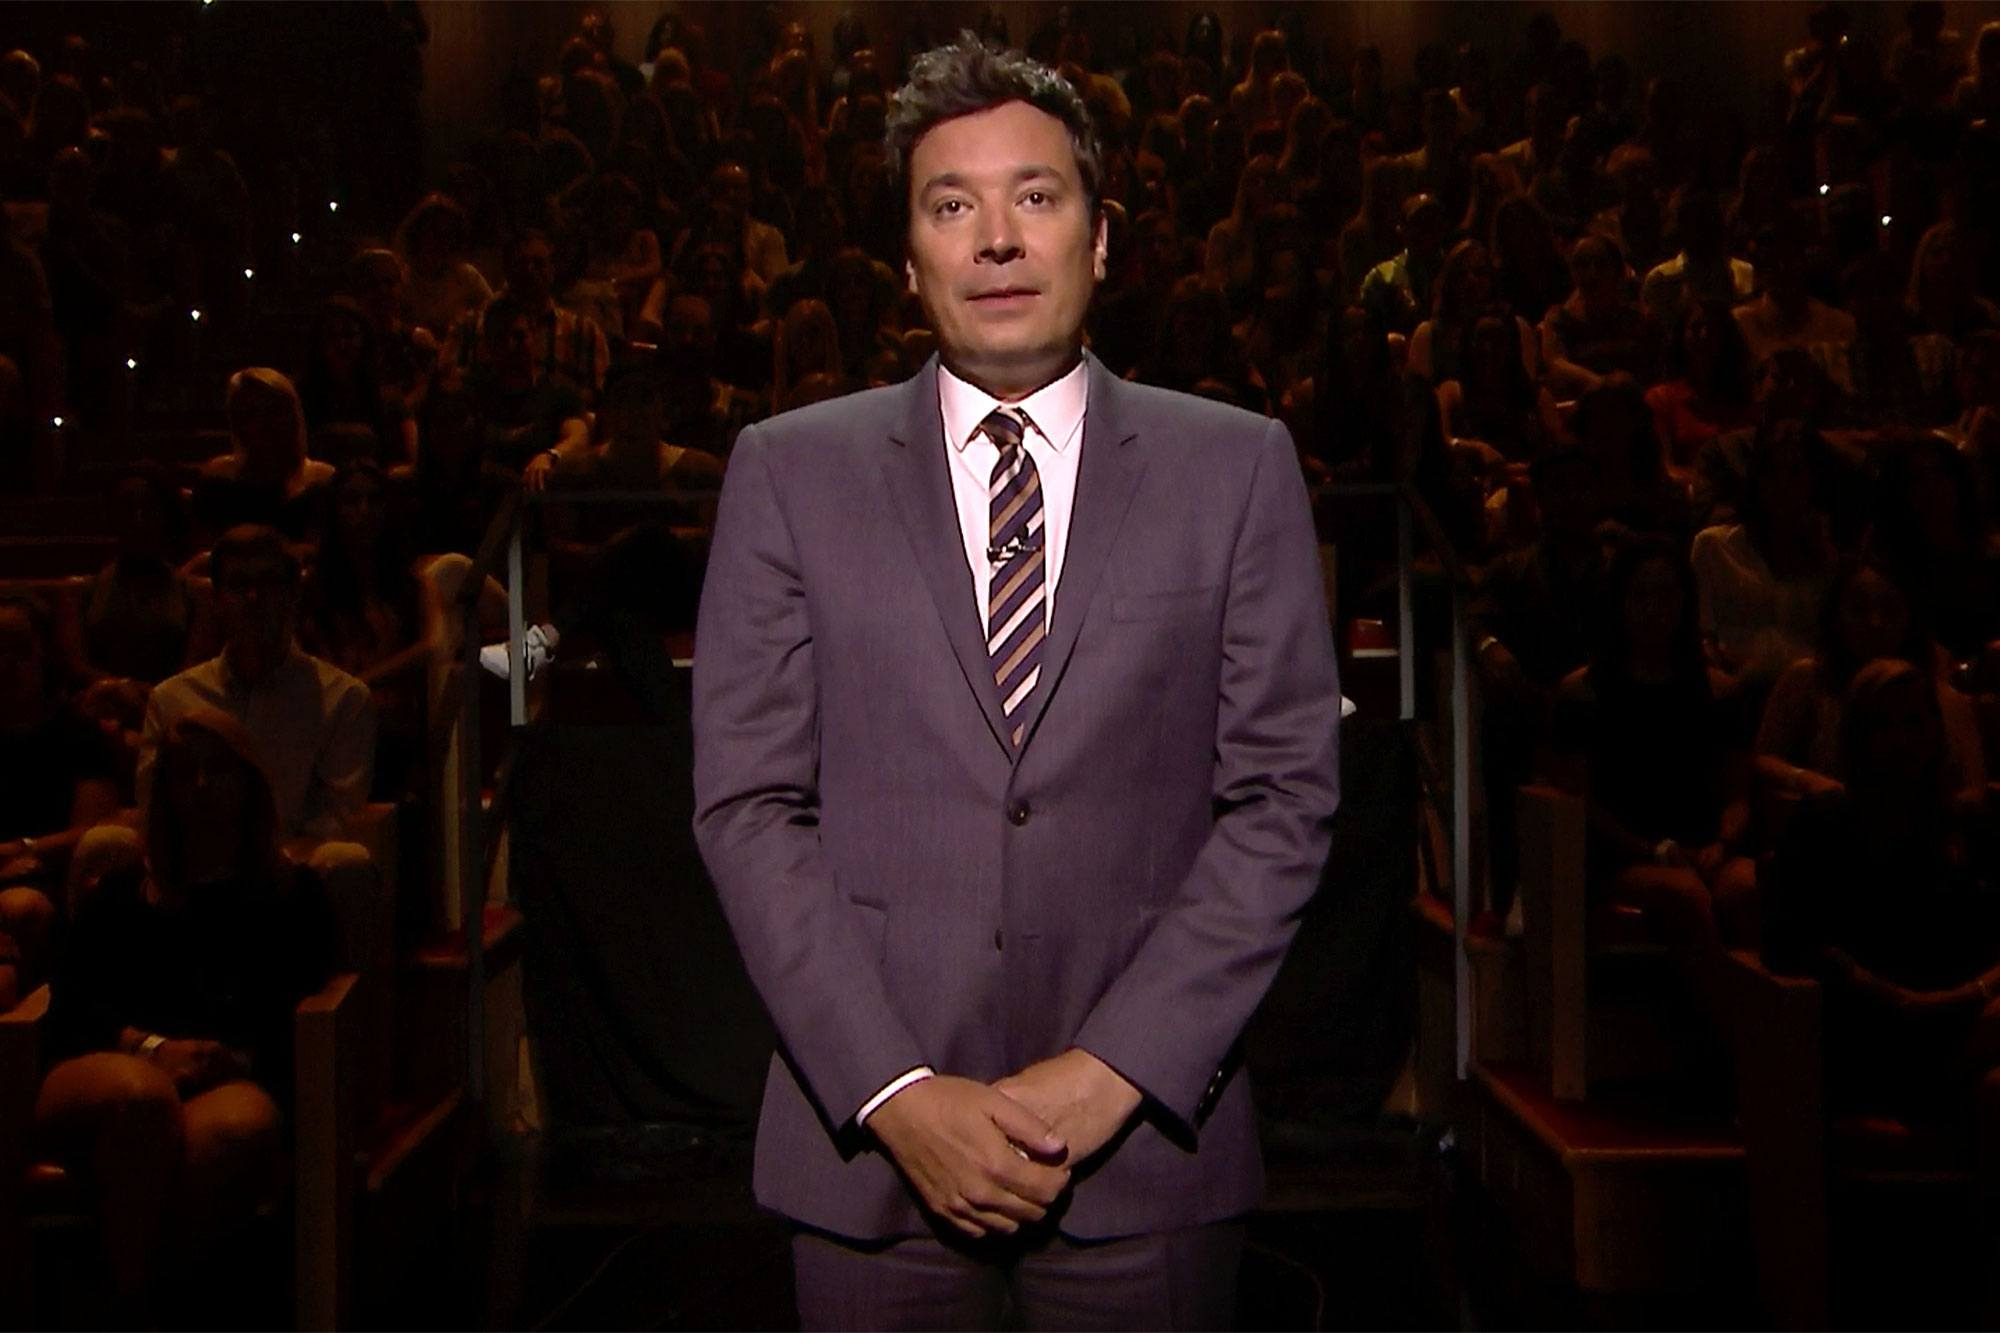 Jimmy Fallon in front of an audience on The Tonight ShowJimmy Fallon in front of an audience on The Tonight Show